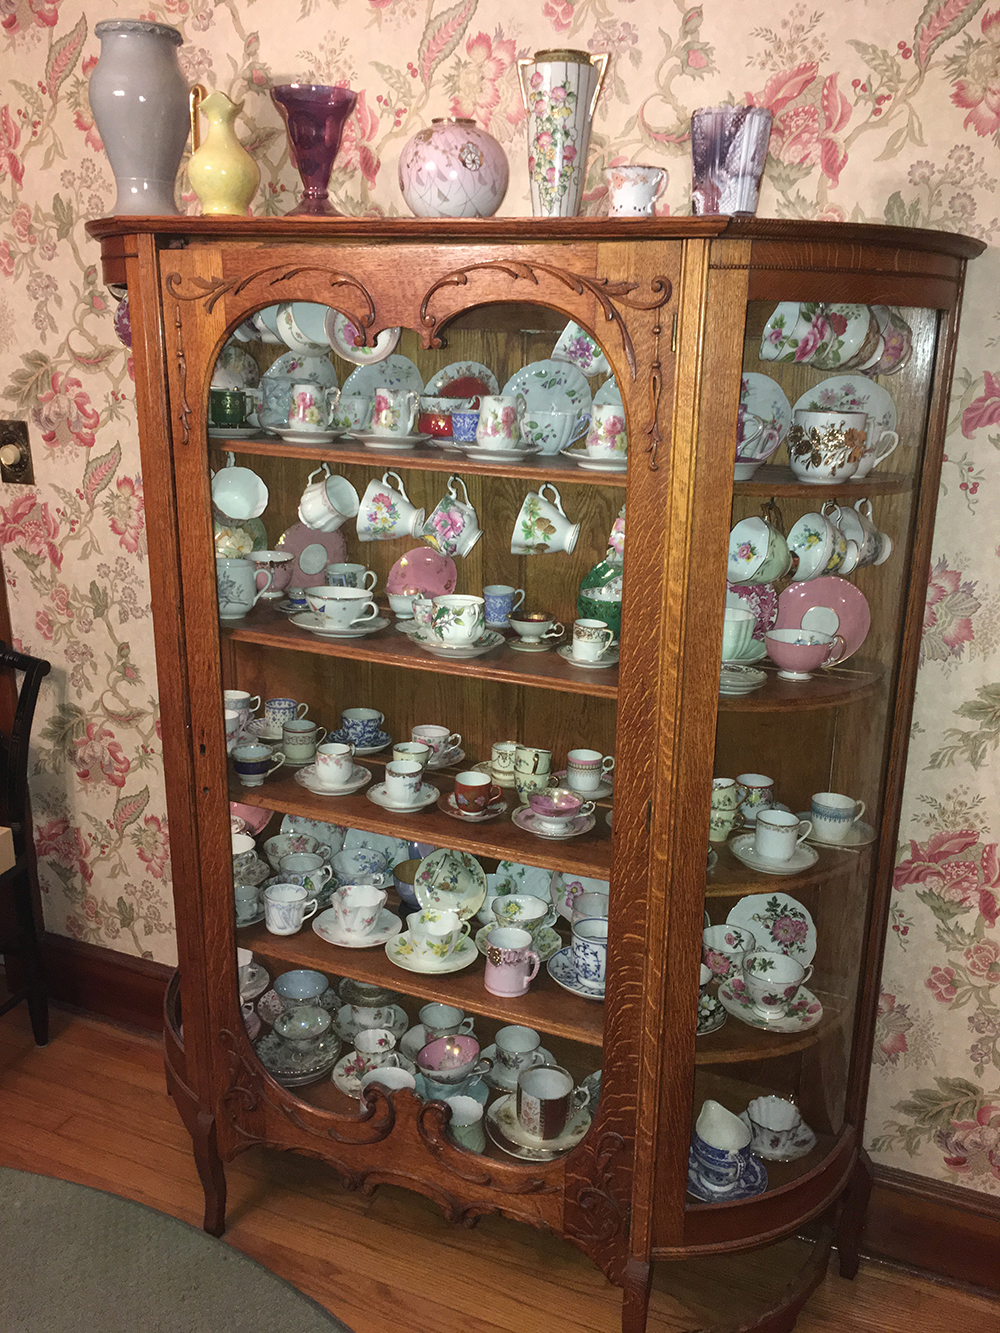 China Cabinet and Contents